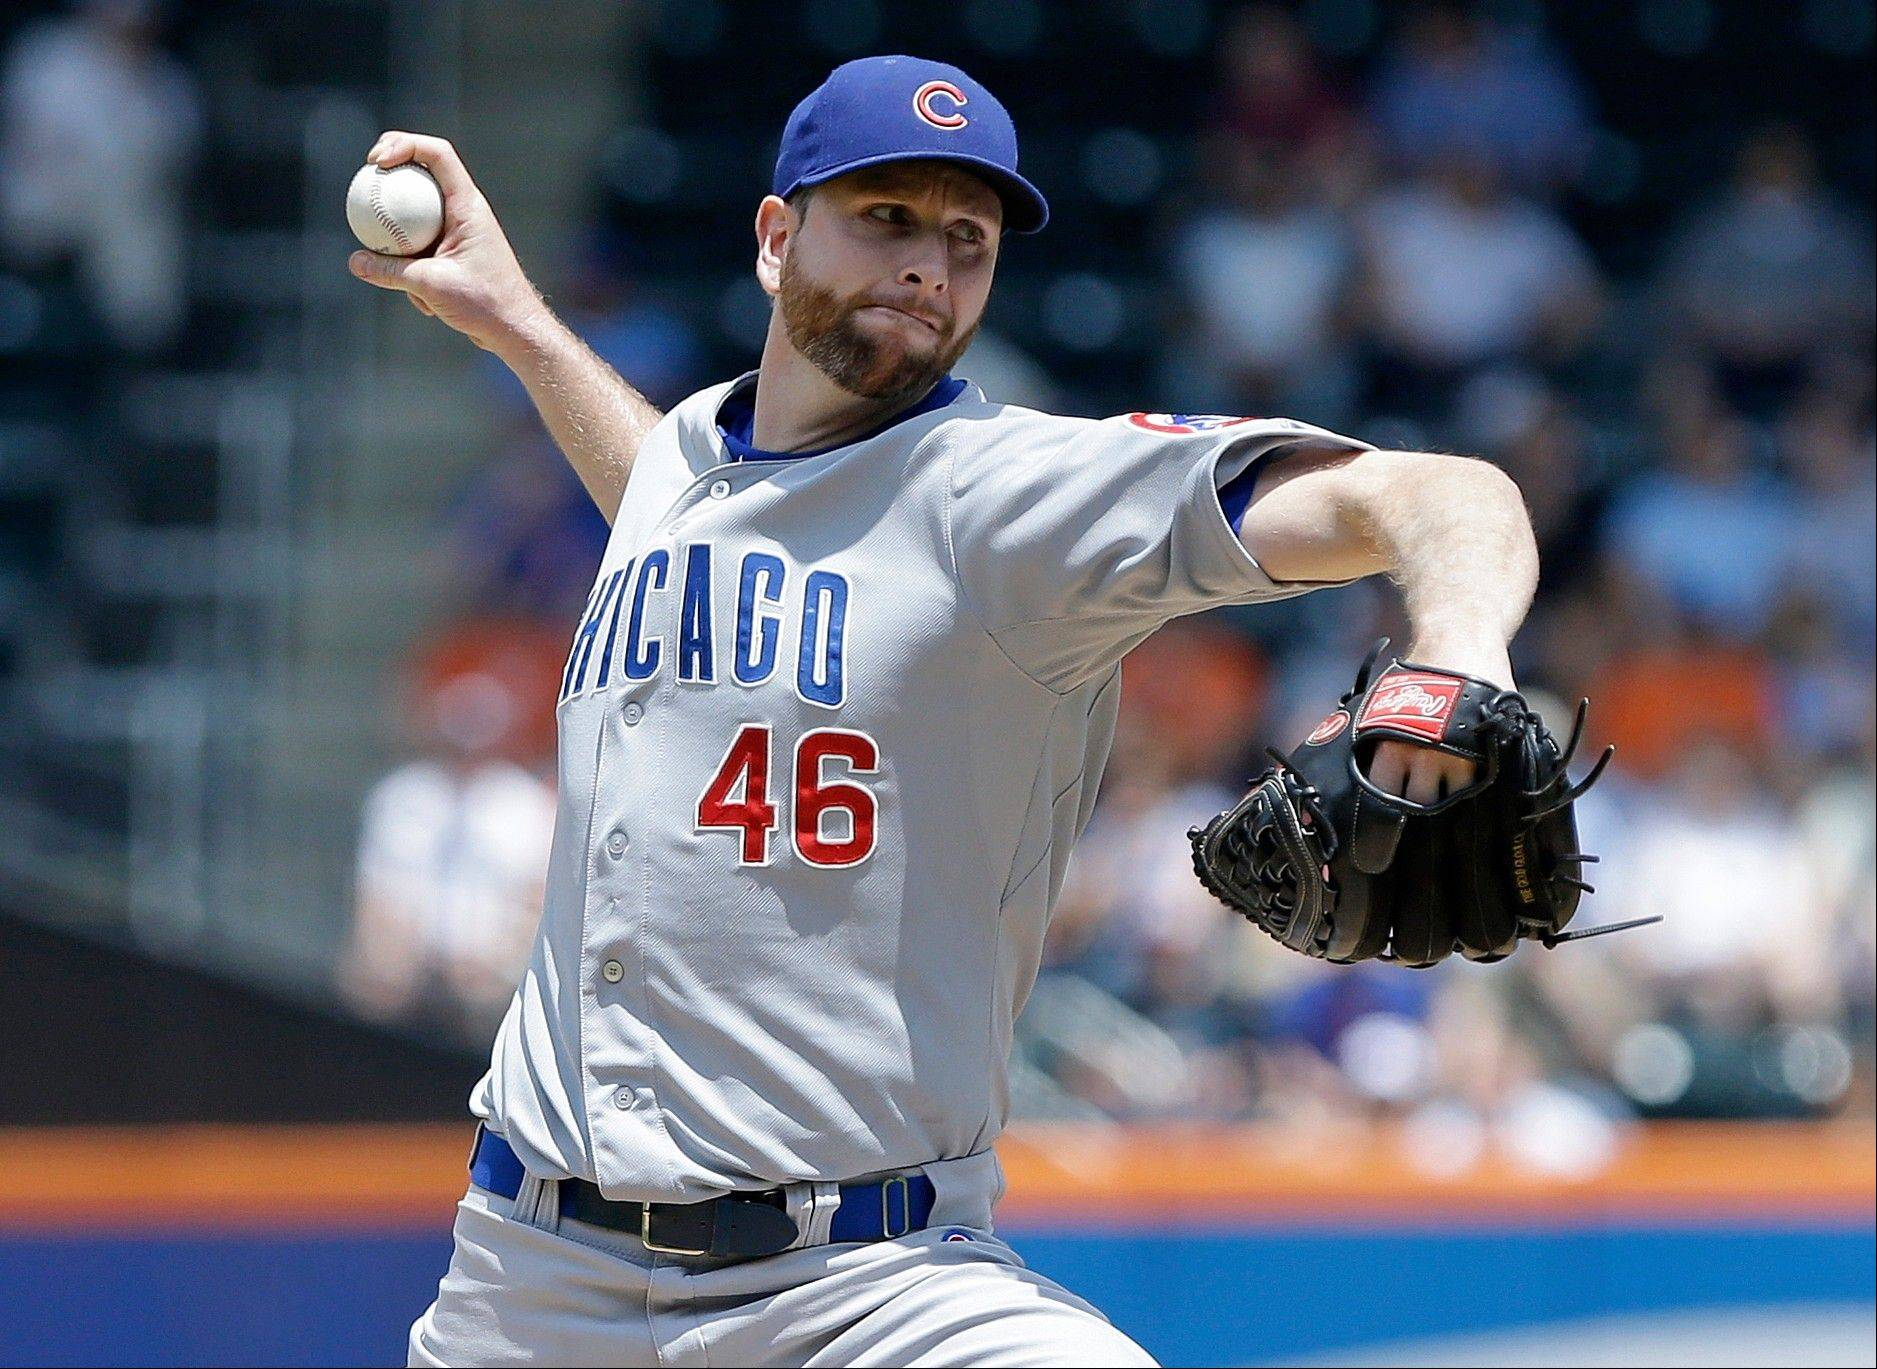 The Cubs traded pitcher Scott Feldman and catcher-infielder Steve Clevenger to Baltimore on Tuesday for pitchers Jake Arrieta and Pedro Strop along with money for international free-agent signings.